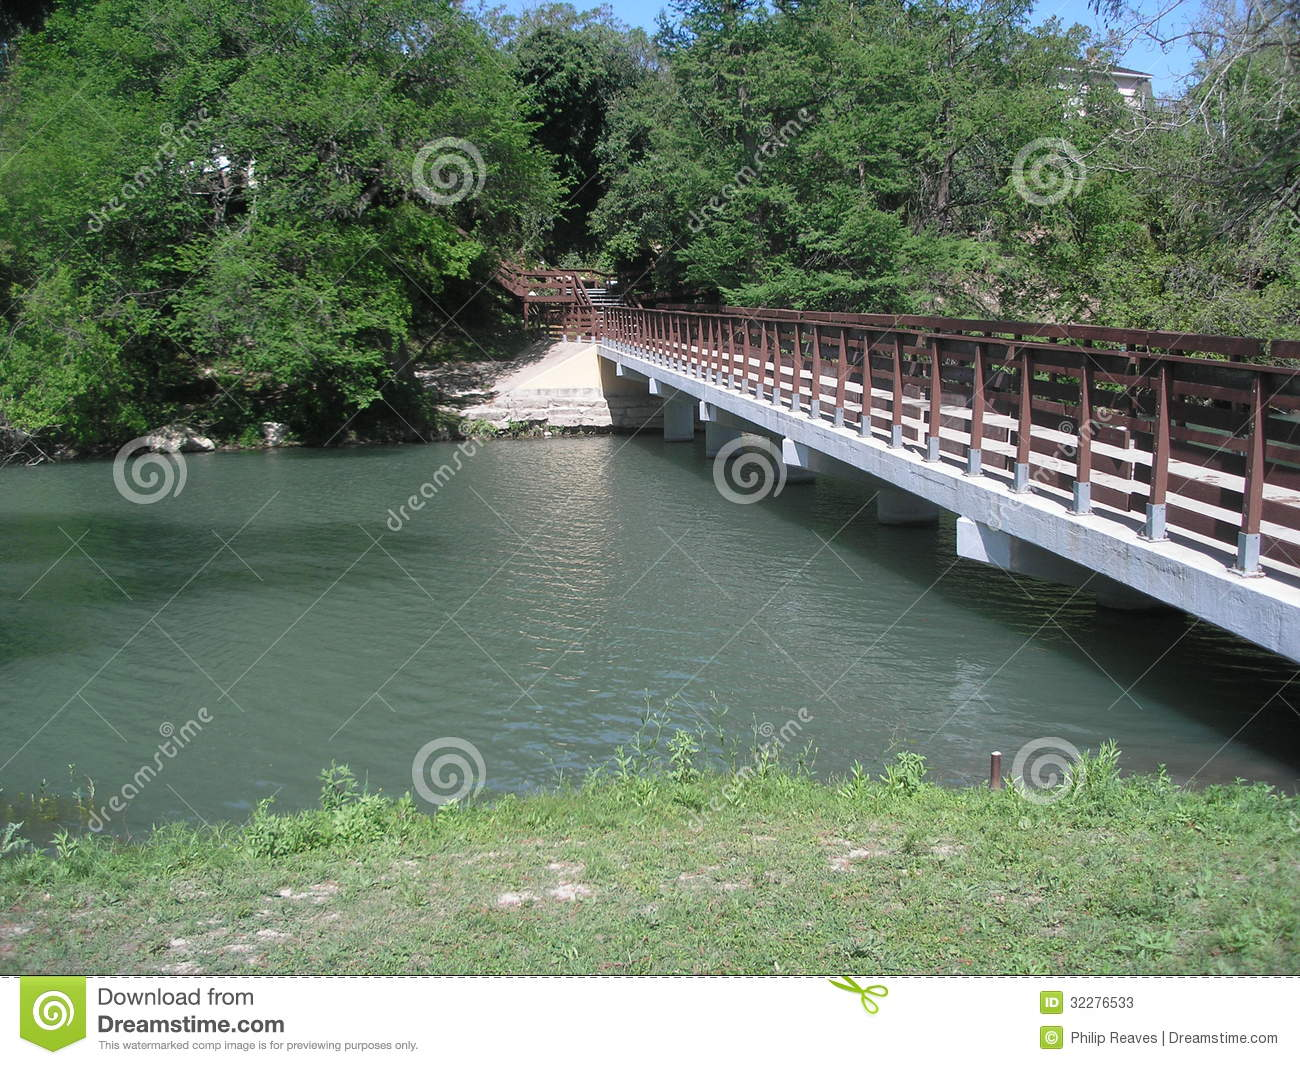 Guadalupe River clipart #12, Download drawings